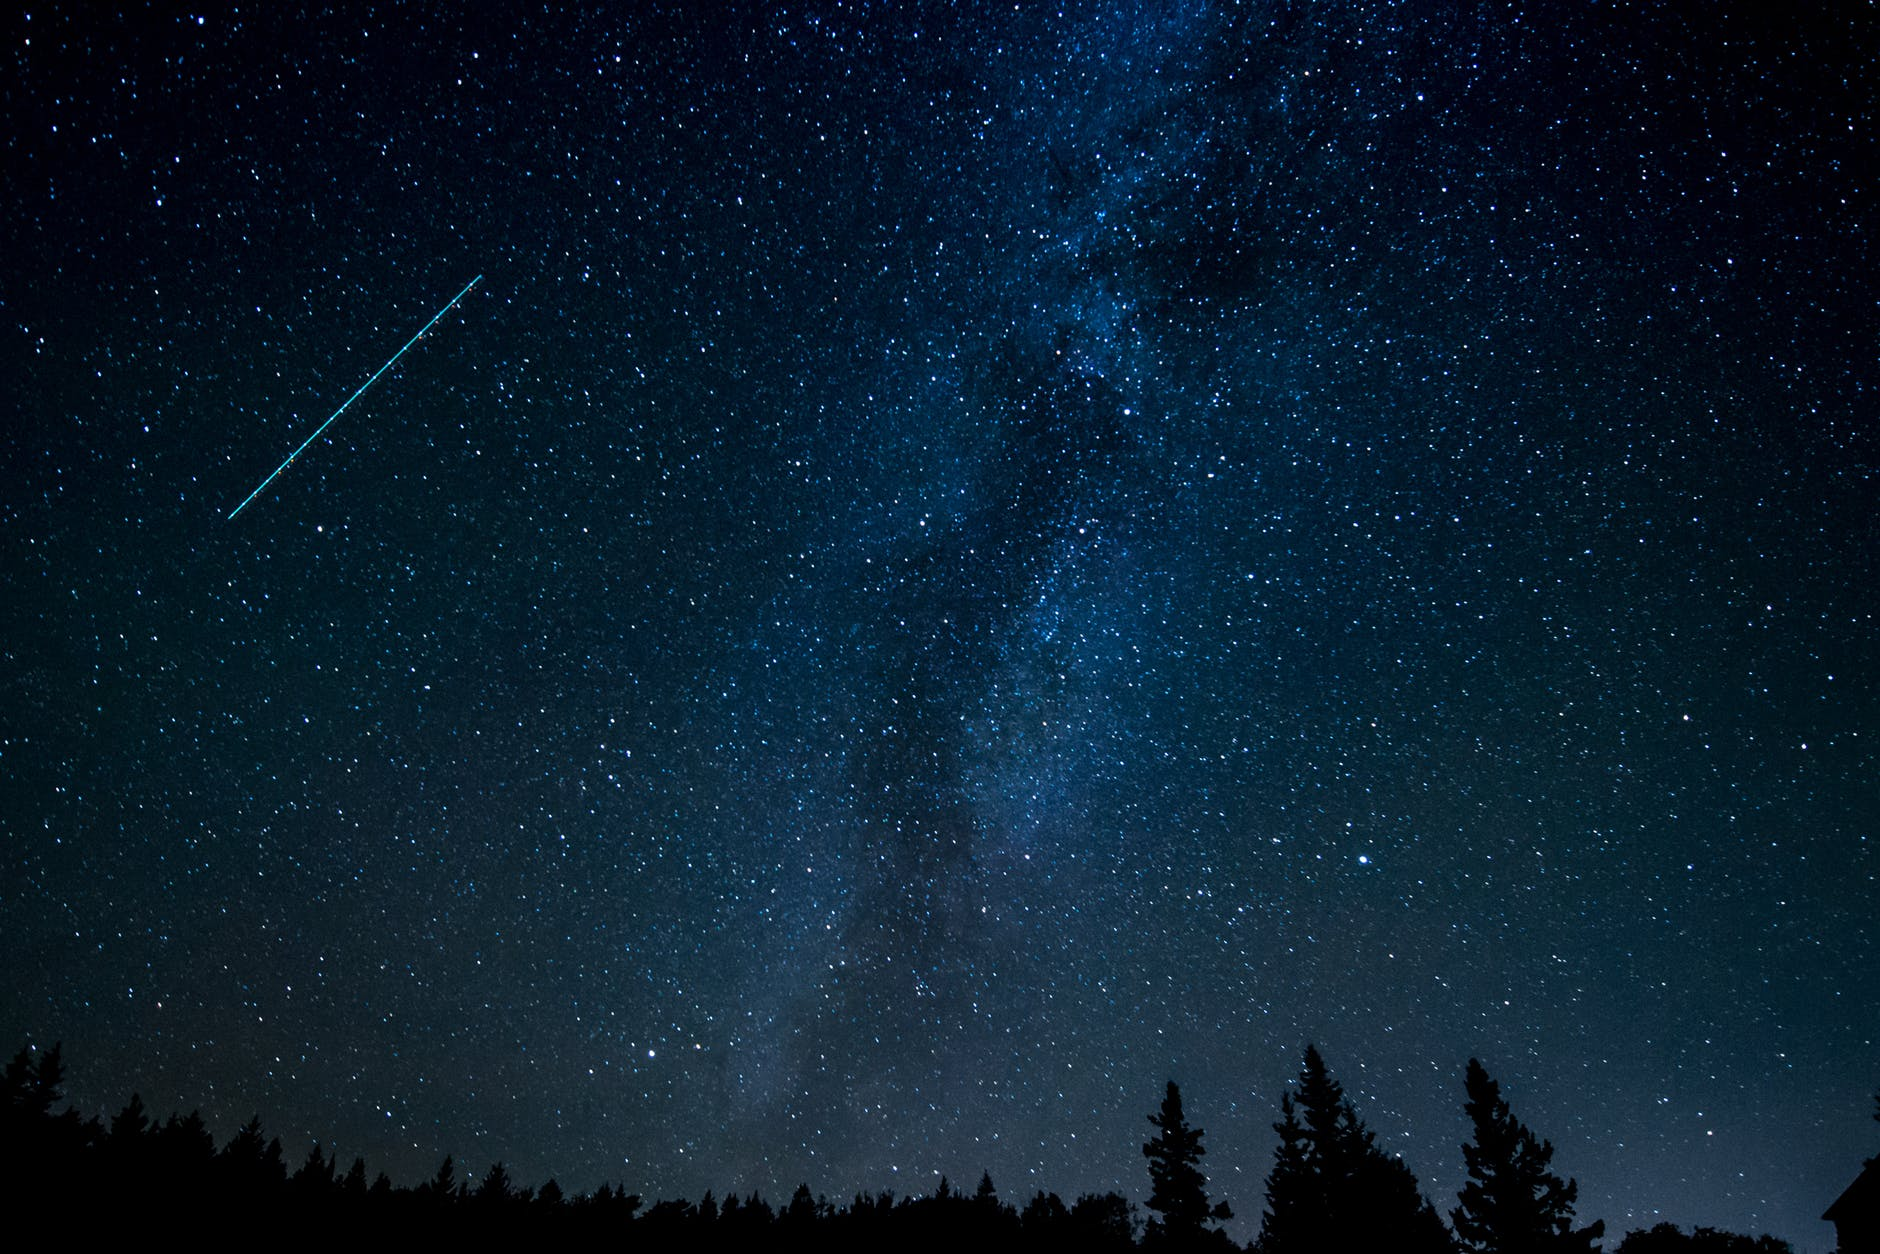 There was a colorful photo of a meteor shower Perseids